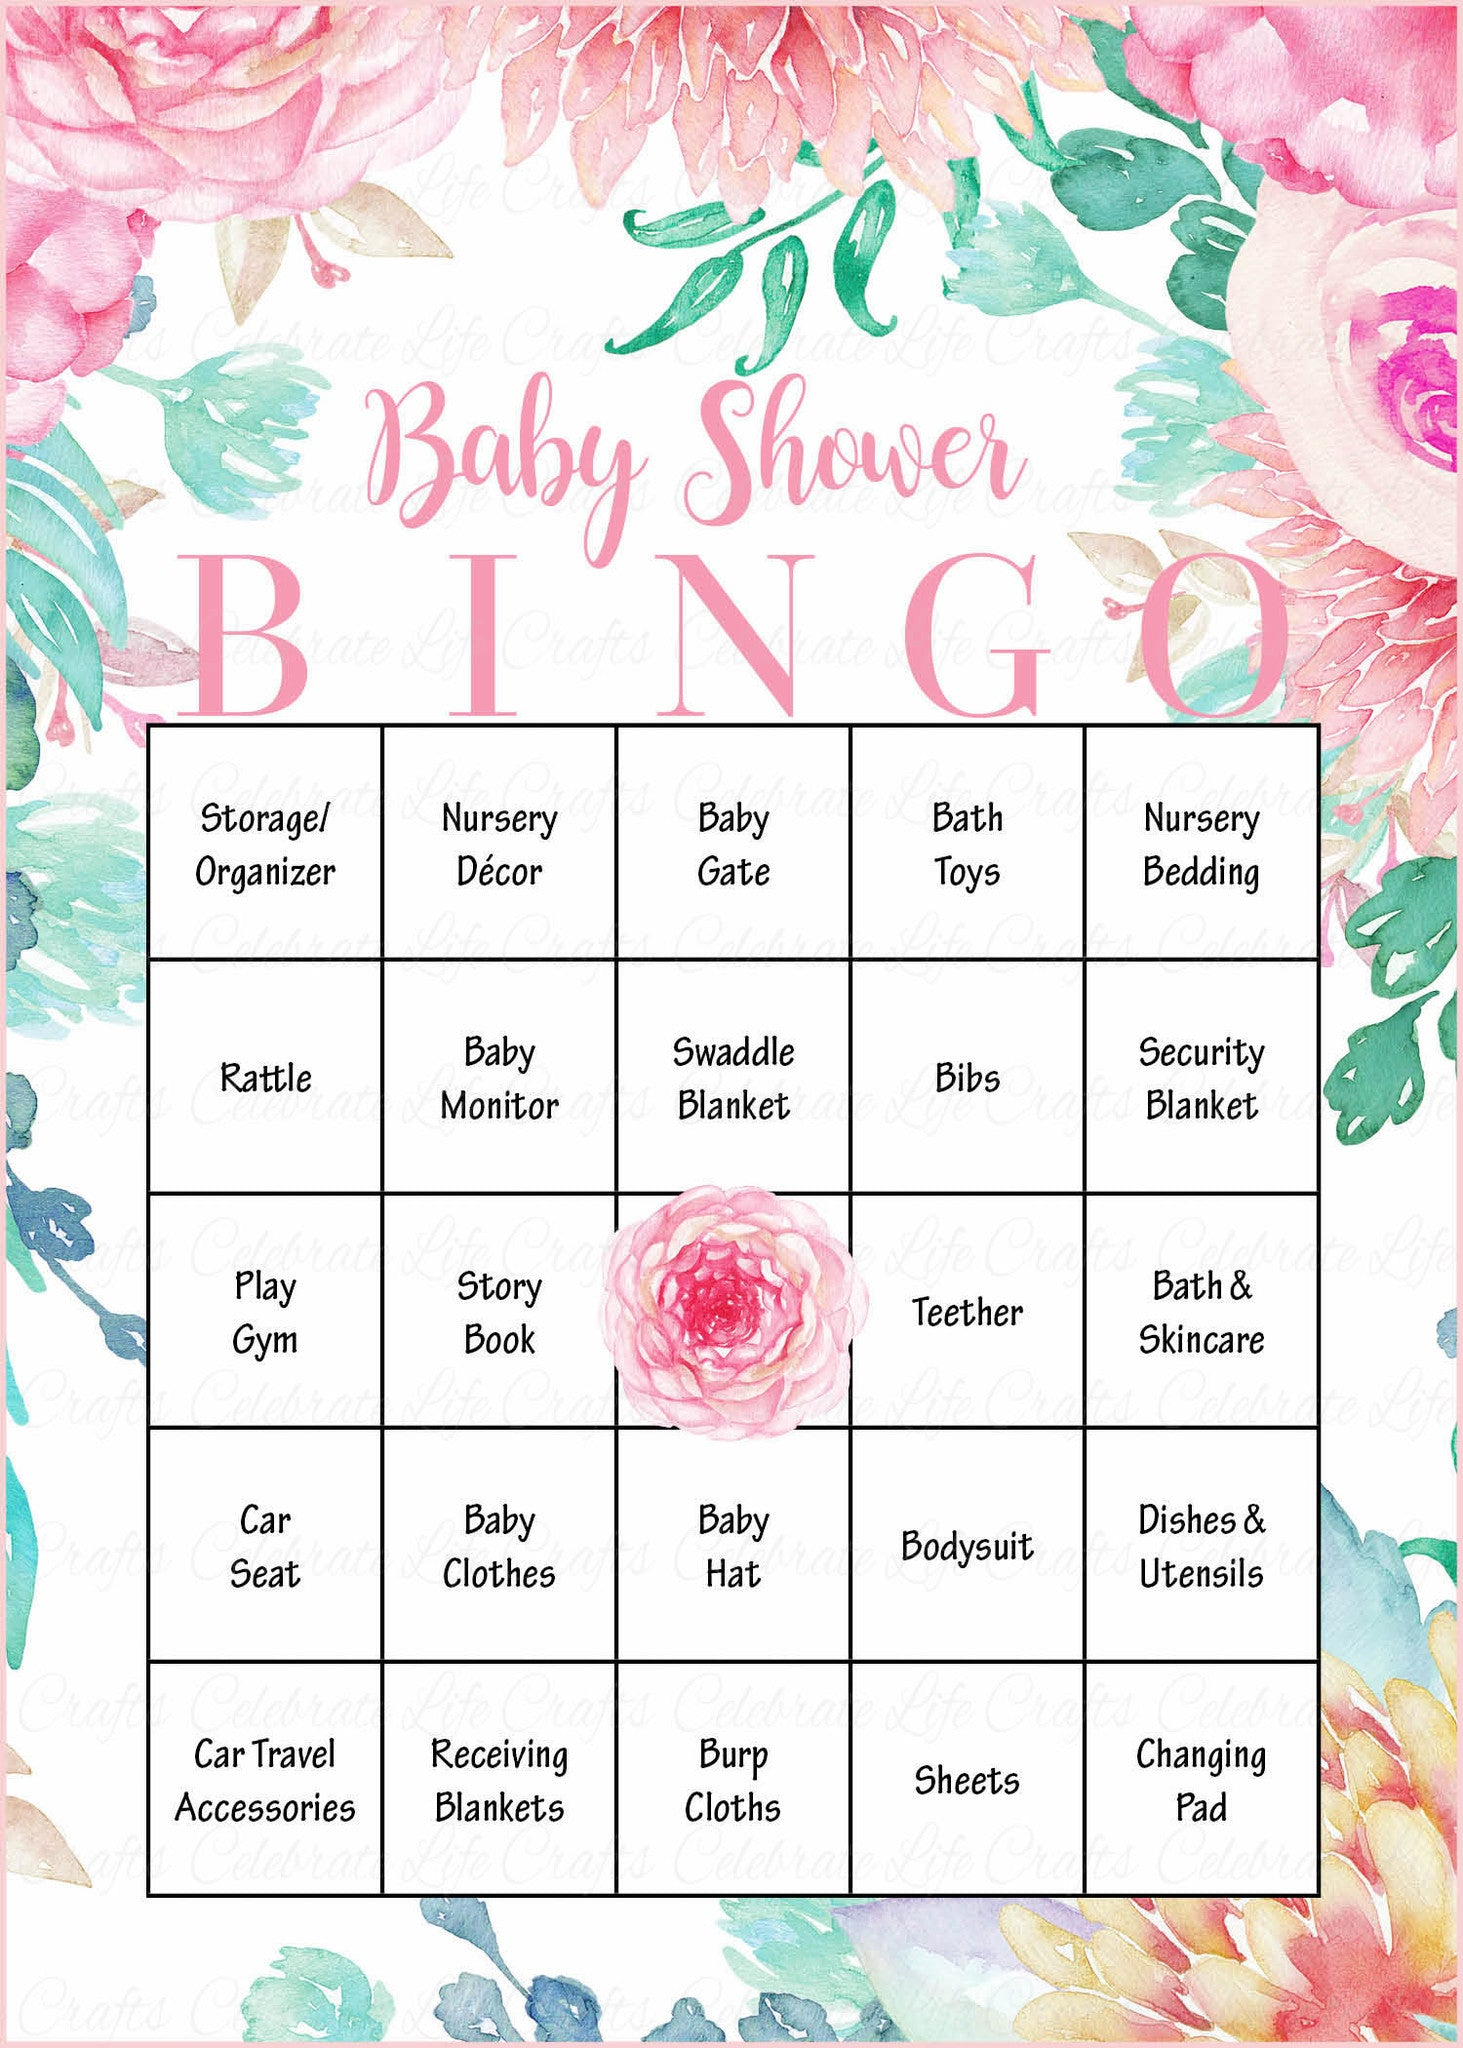 Floral Baby Bingo Cards   Printable Download   Prefilled   Spring Baby  Shower Game For Girl   Pink Floral   B33001.